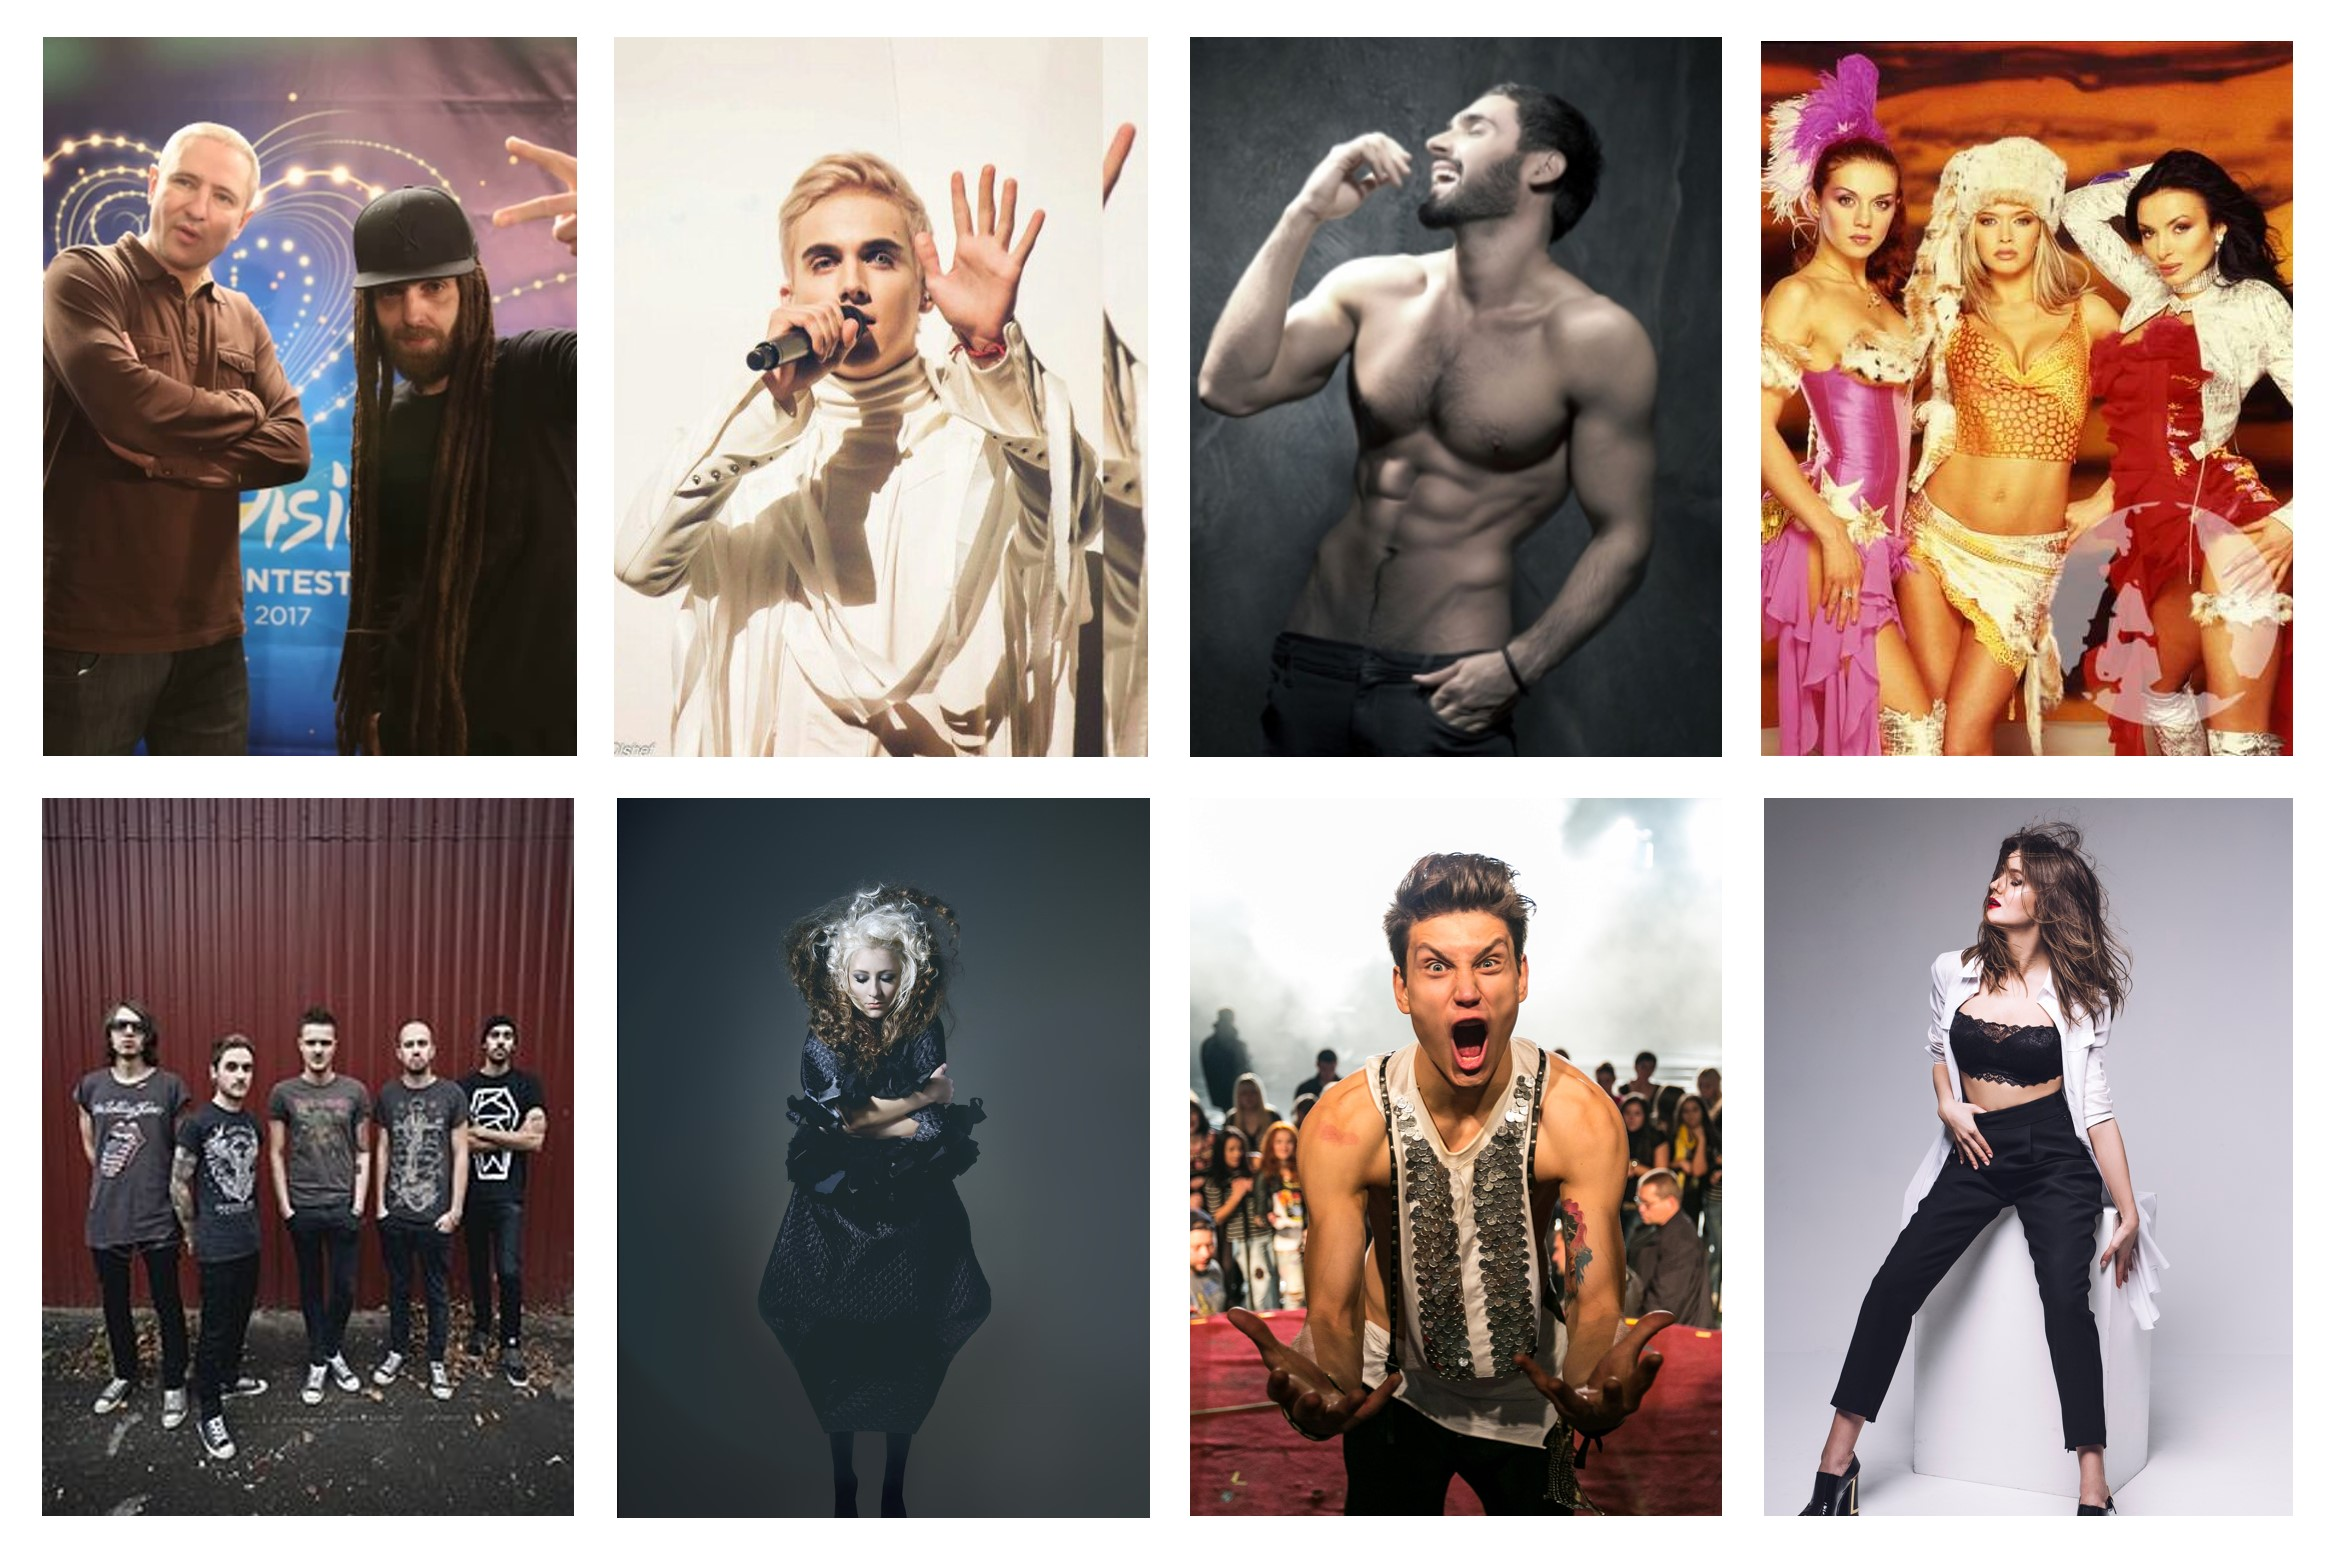 Poll: Who should qualify from Semi-Final 3 of Ukraine's Vidbir 2017?